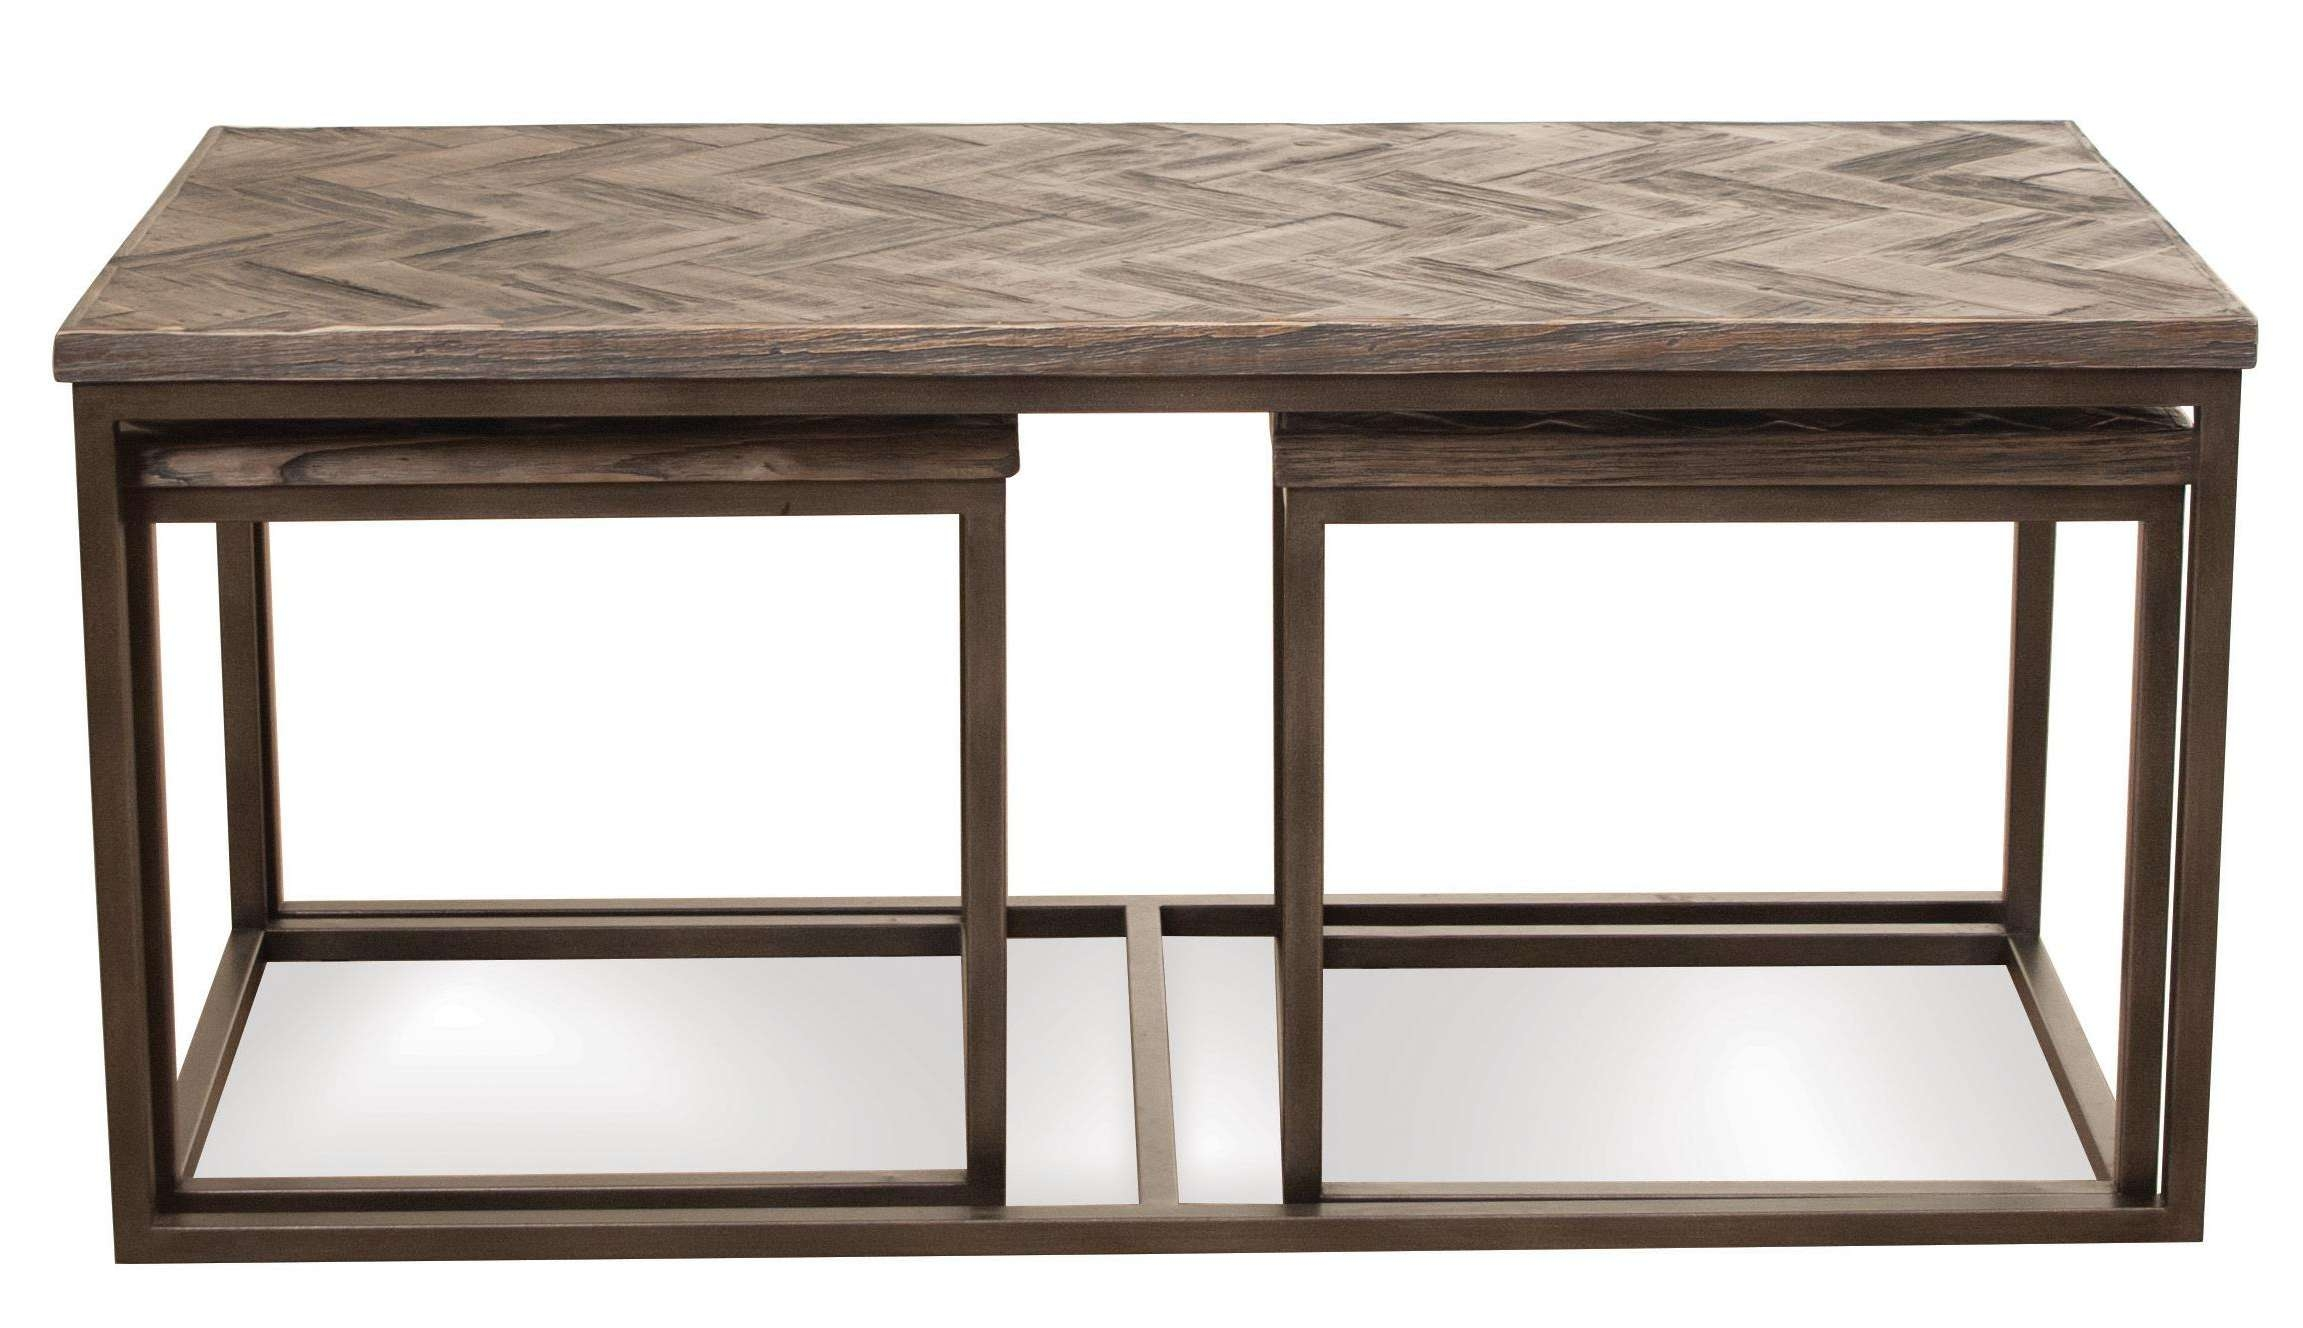 2018 Nest Coffee Tables Within Coffee Table Circle Coffee Table Dark Nest Of Tables Dark Wood (View 17 of 20)